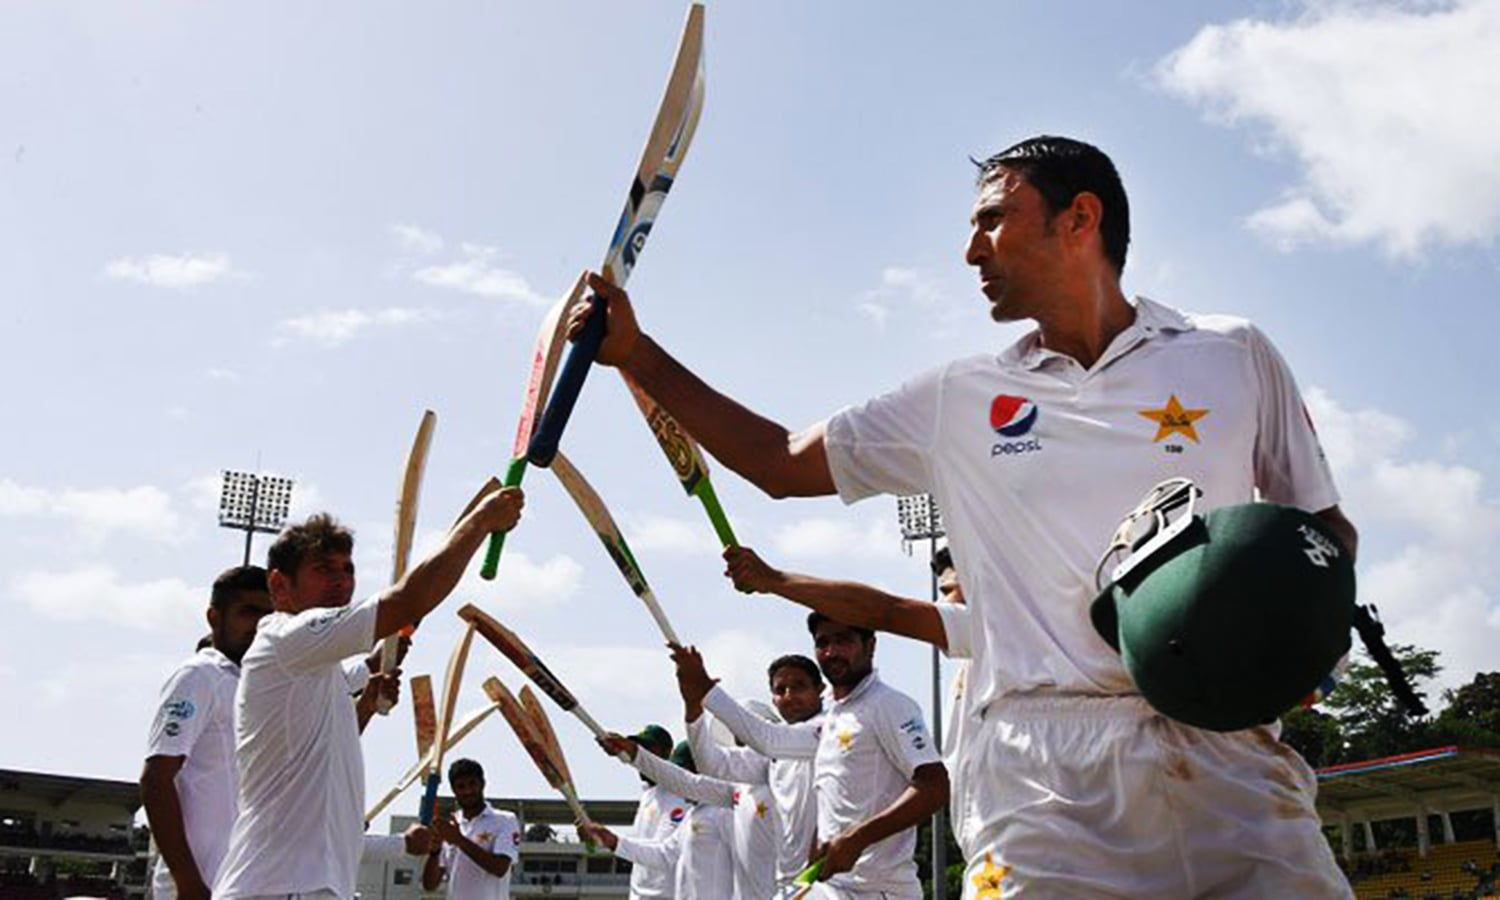 Younis raises a bat to his team mates as he walks off the pitch after his final inning. — ICC's Twitter